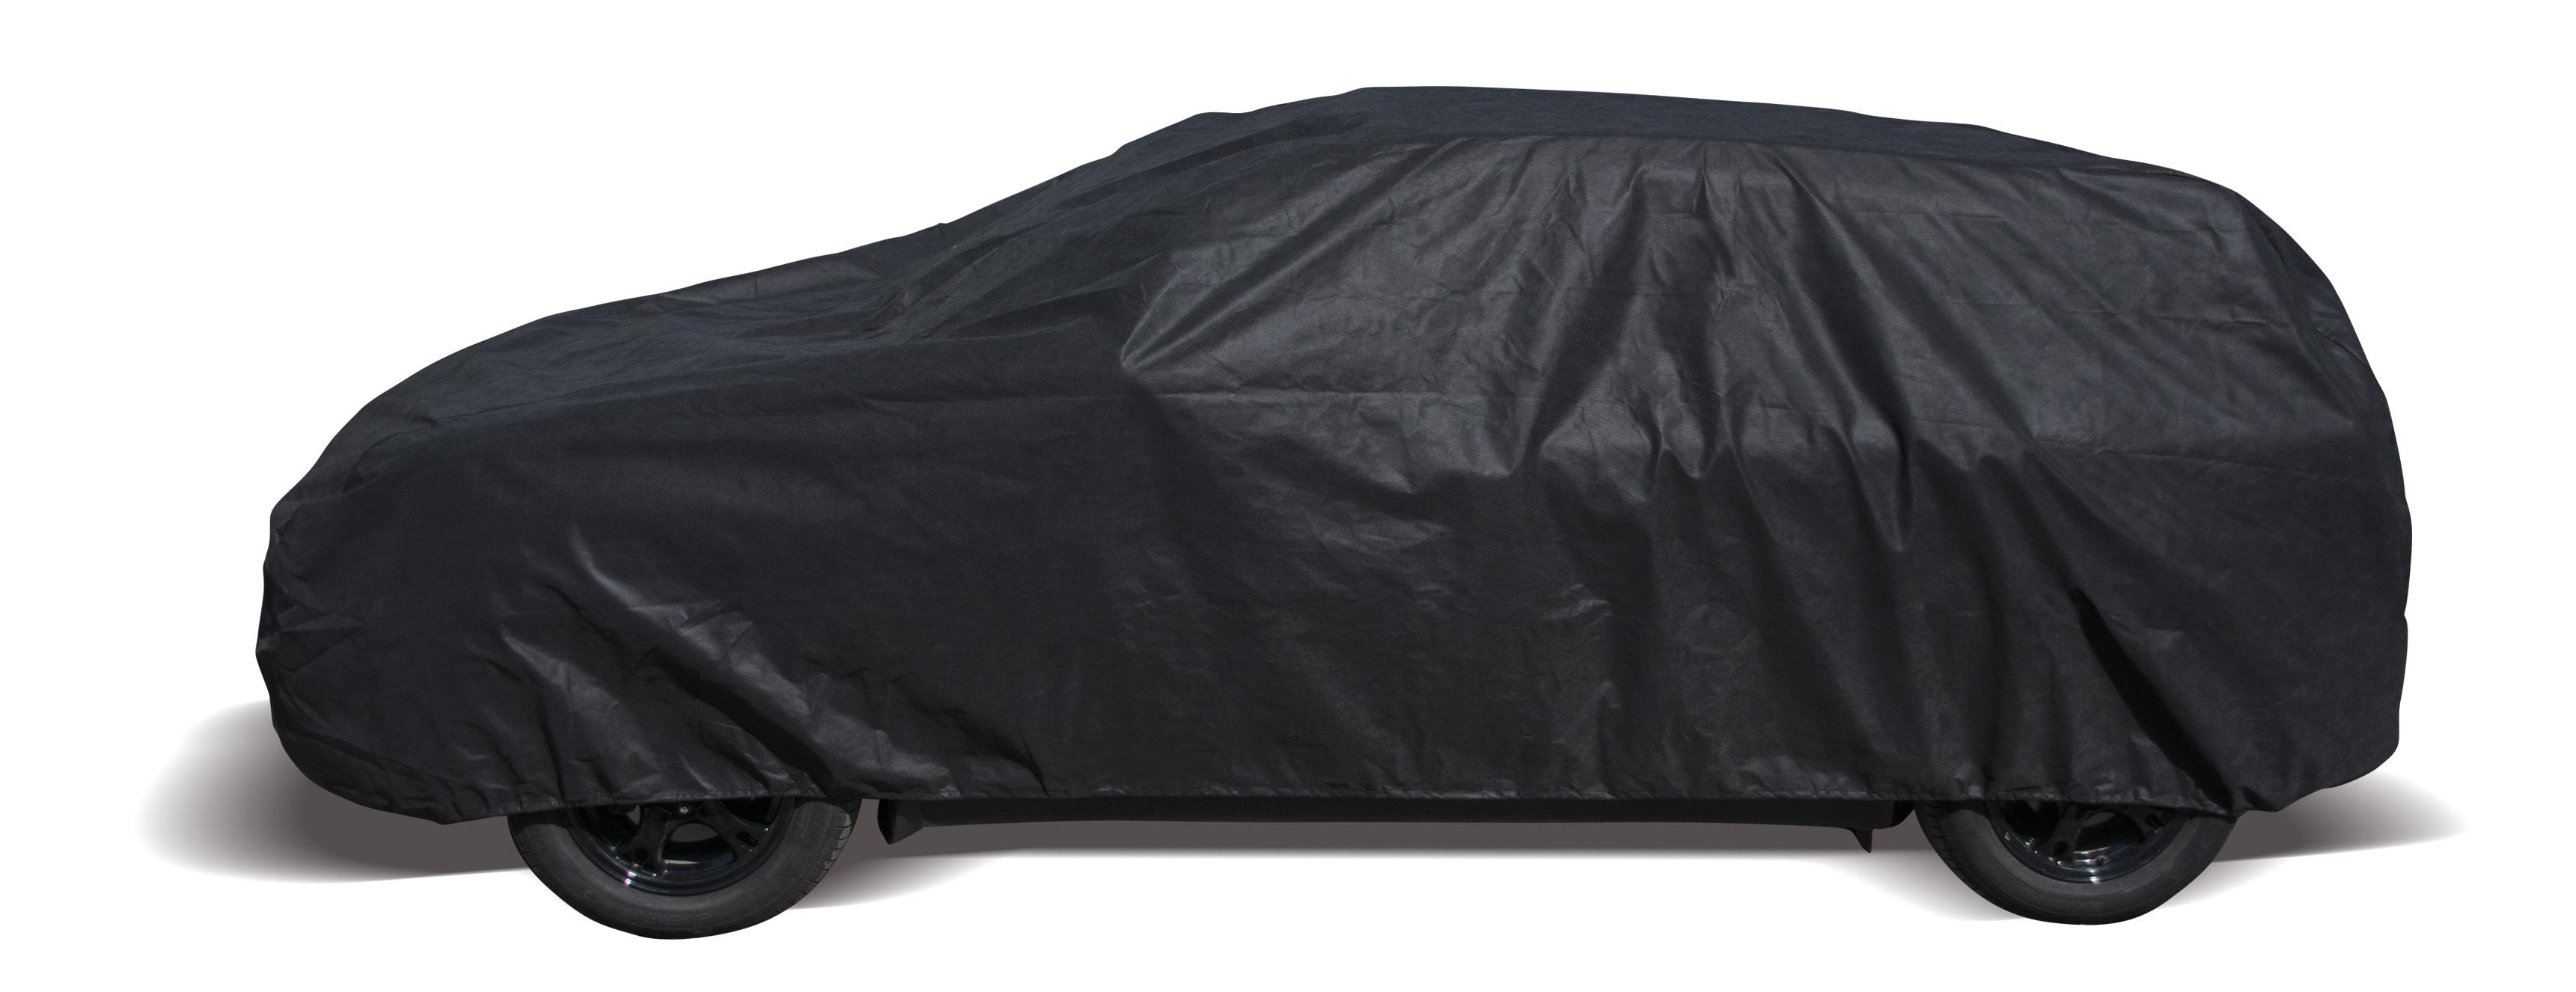 Car cover CARPASSION 10020 rating